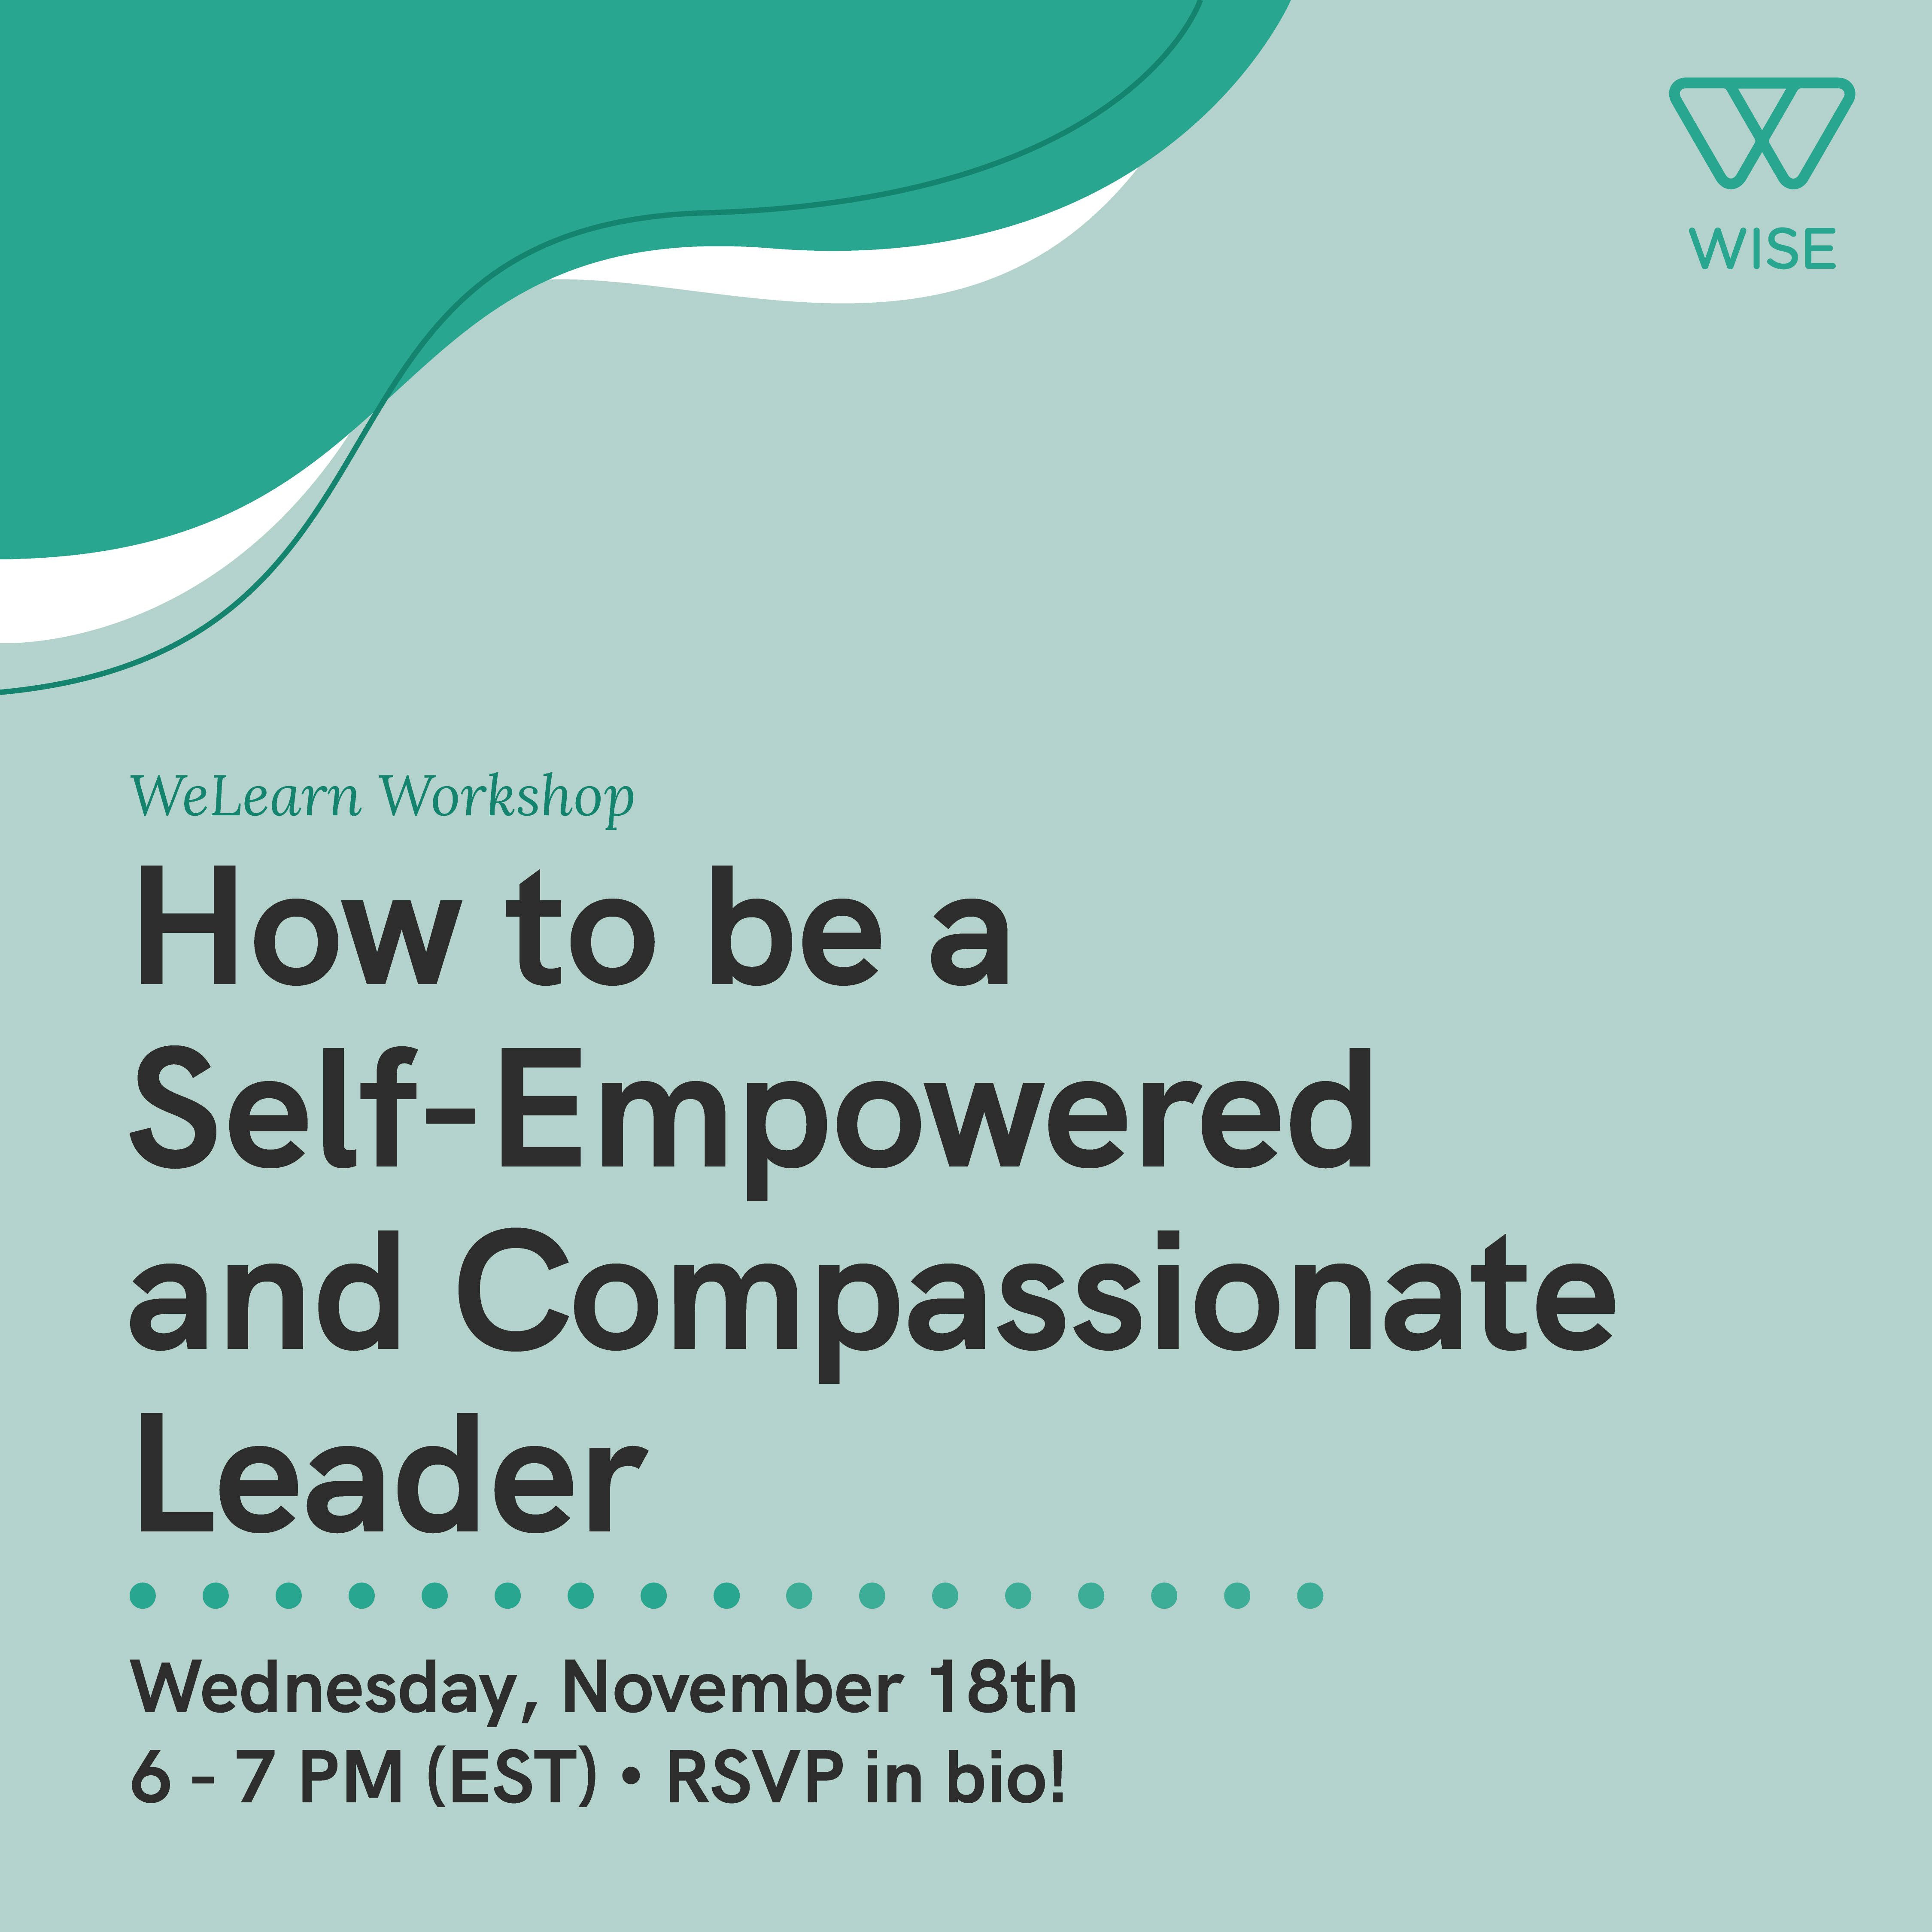 """Event flyer for """"How to be a Self-Empowered and Compassionate Leader""""."""